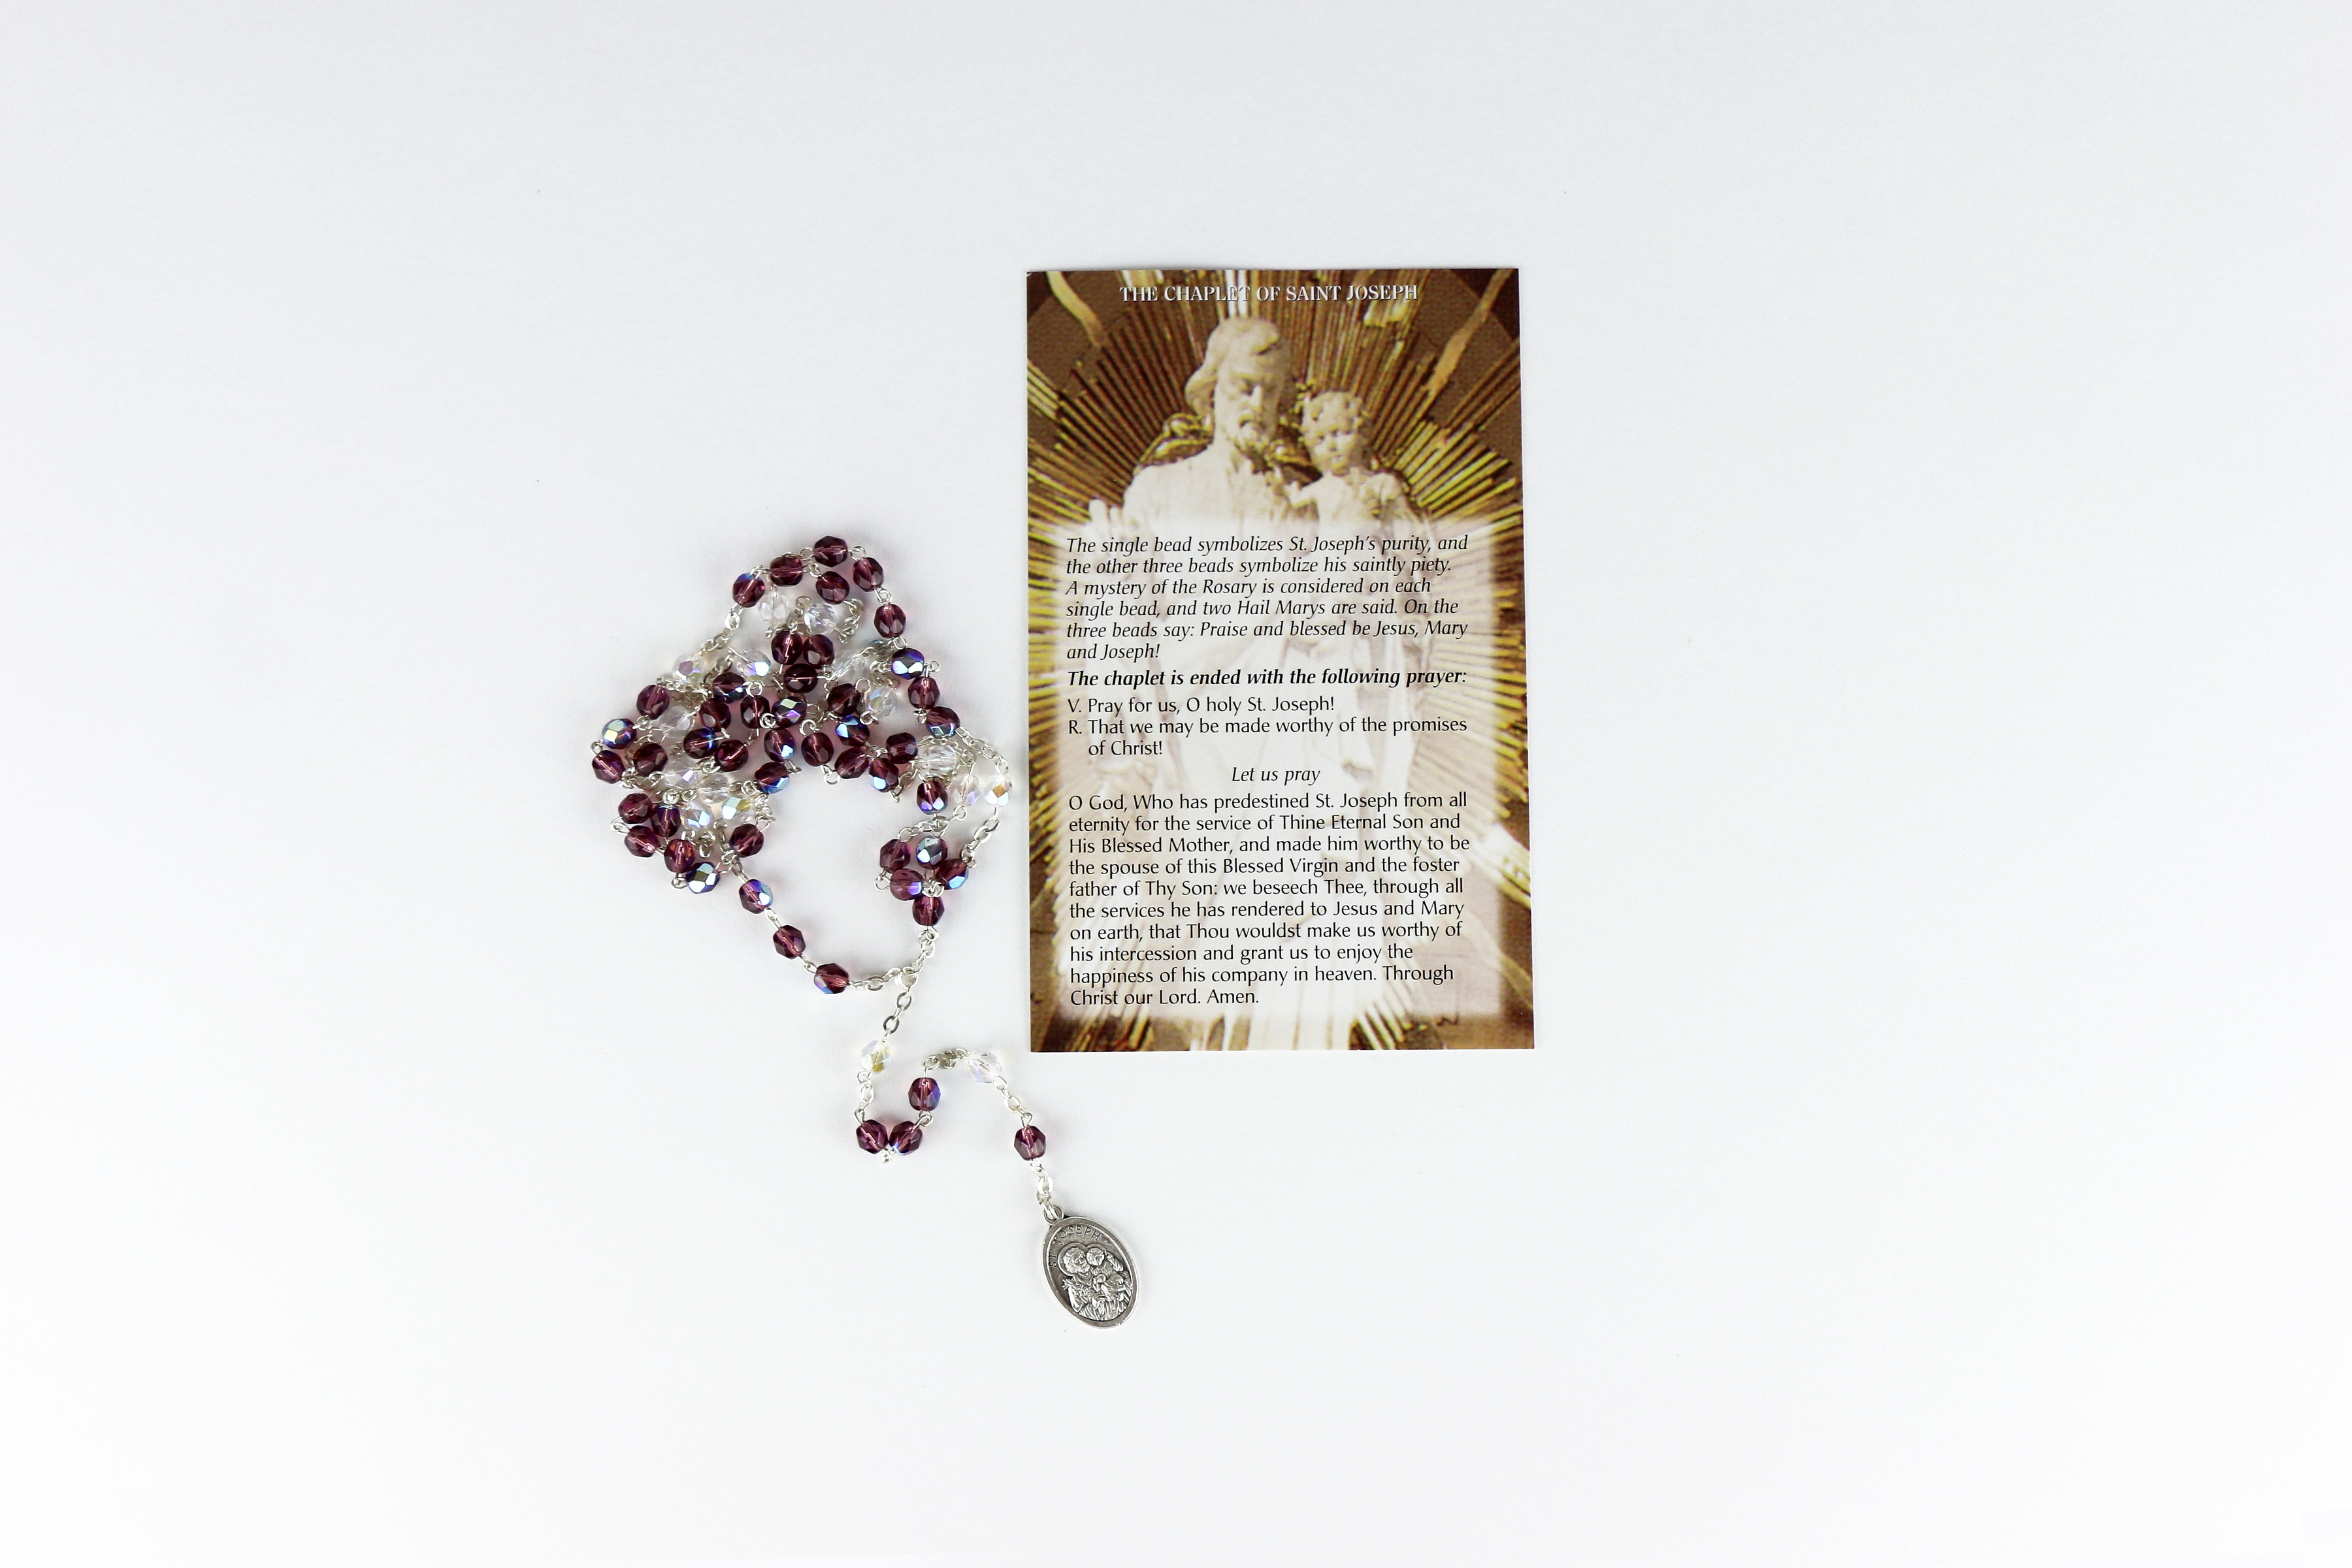 Chapelet et carte de prière / Prayer Card and Rosary